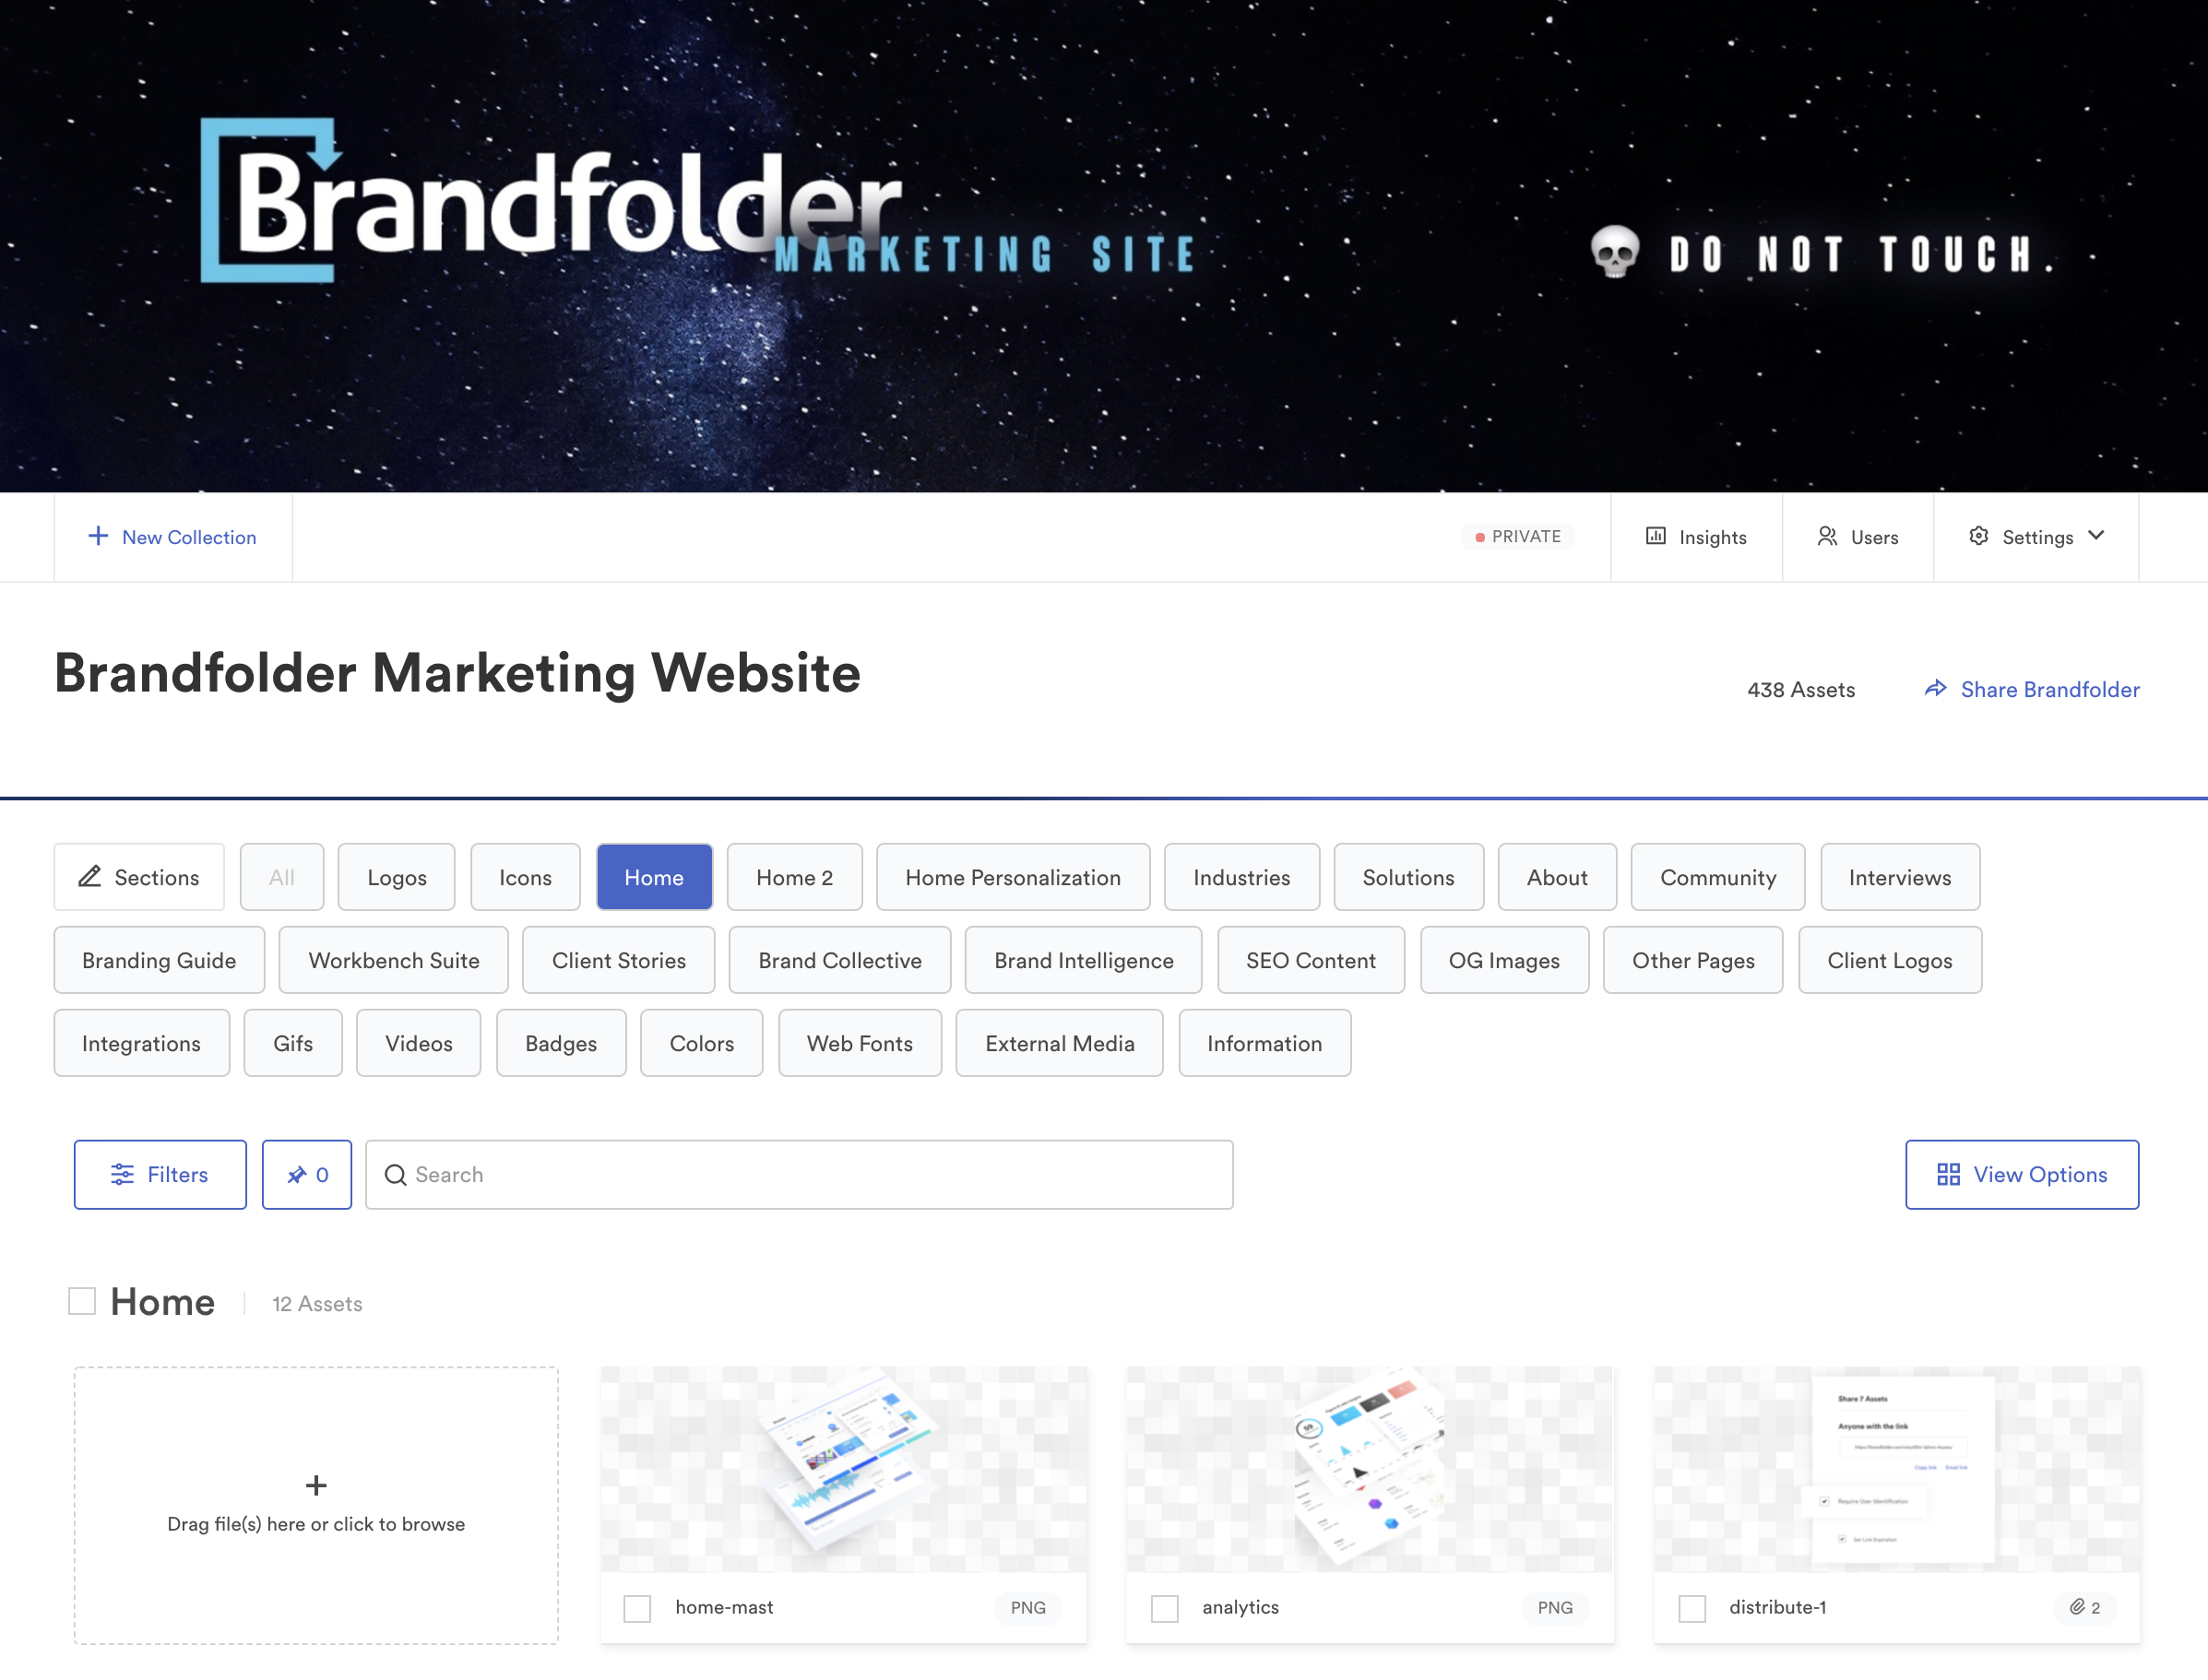 Brandfolder for marketing website